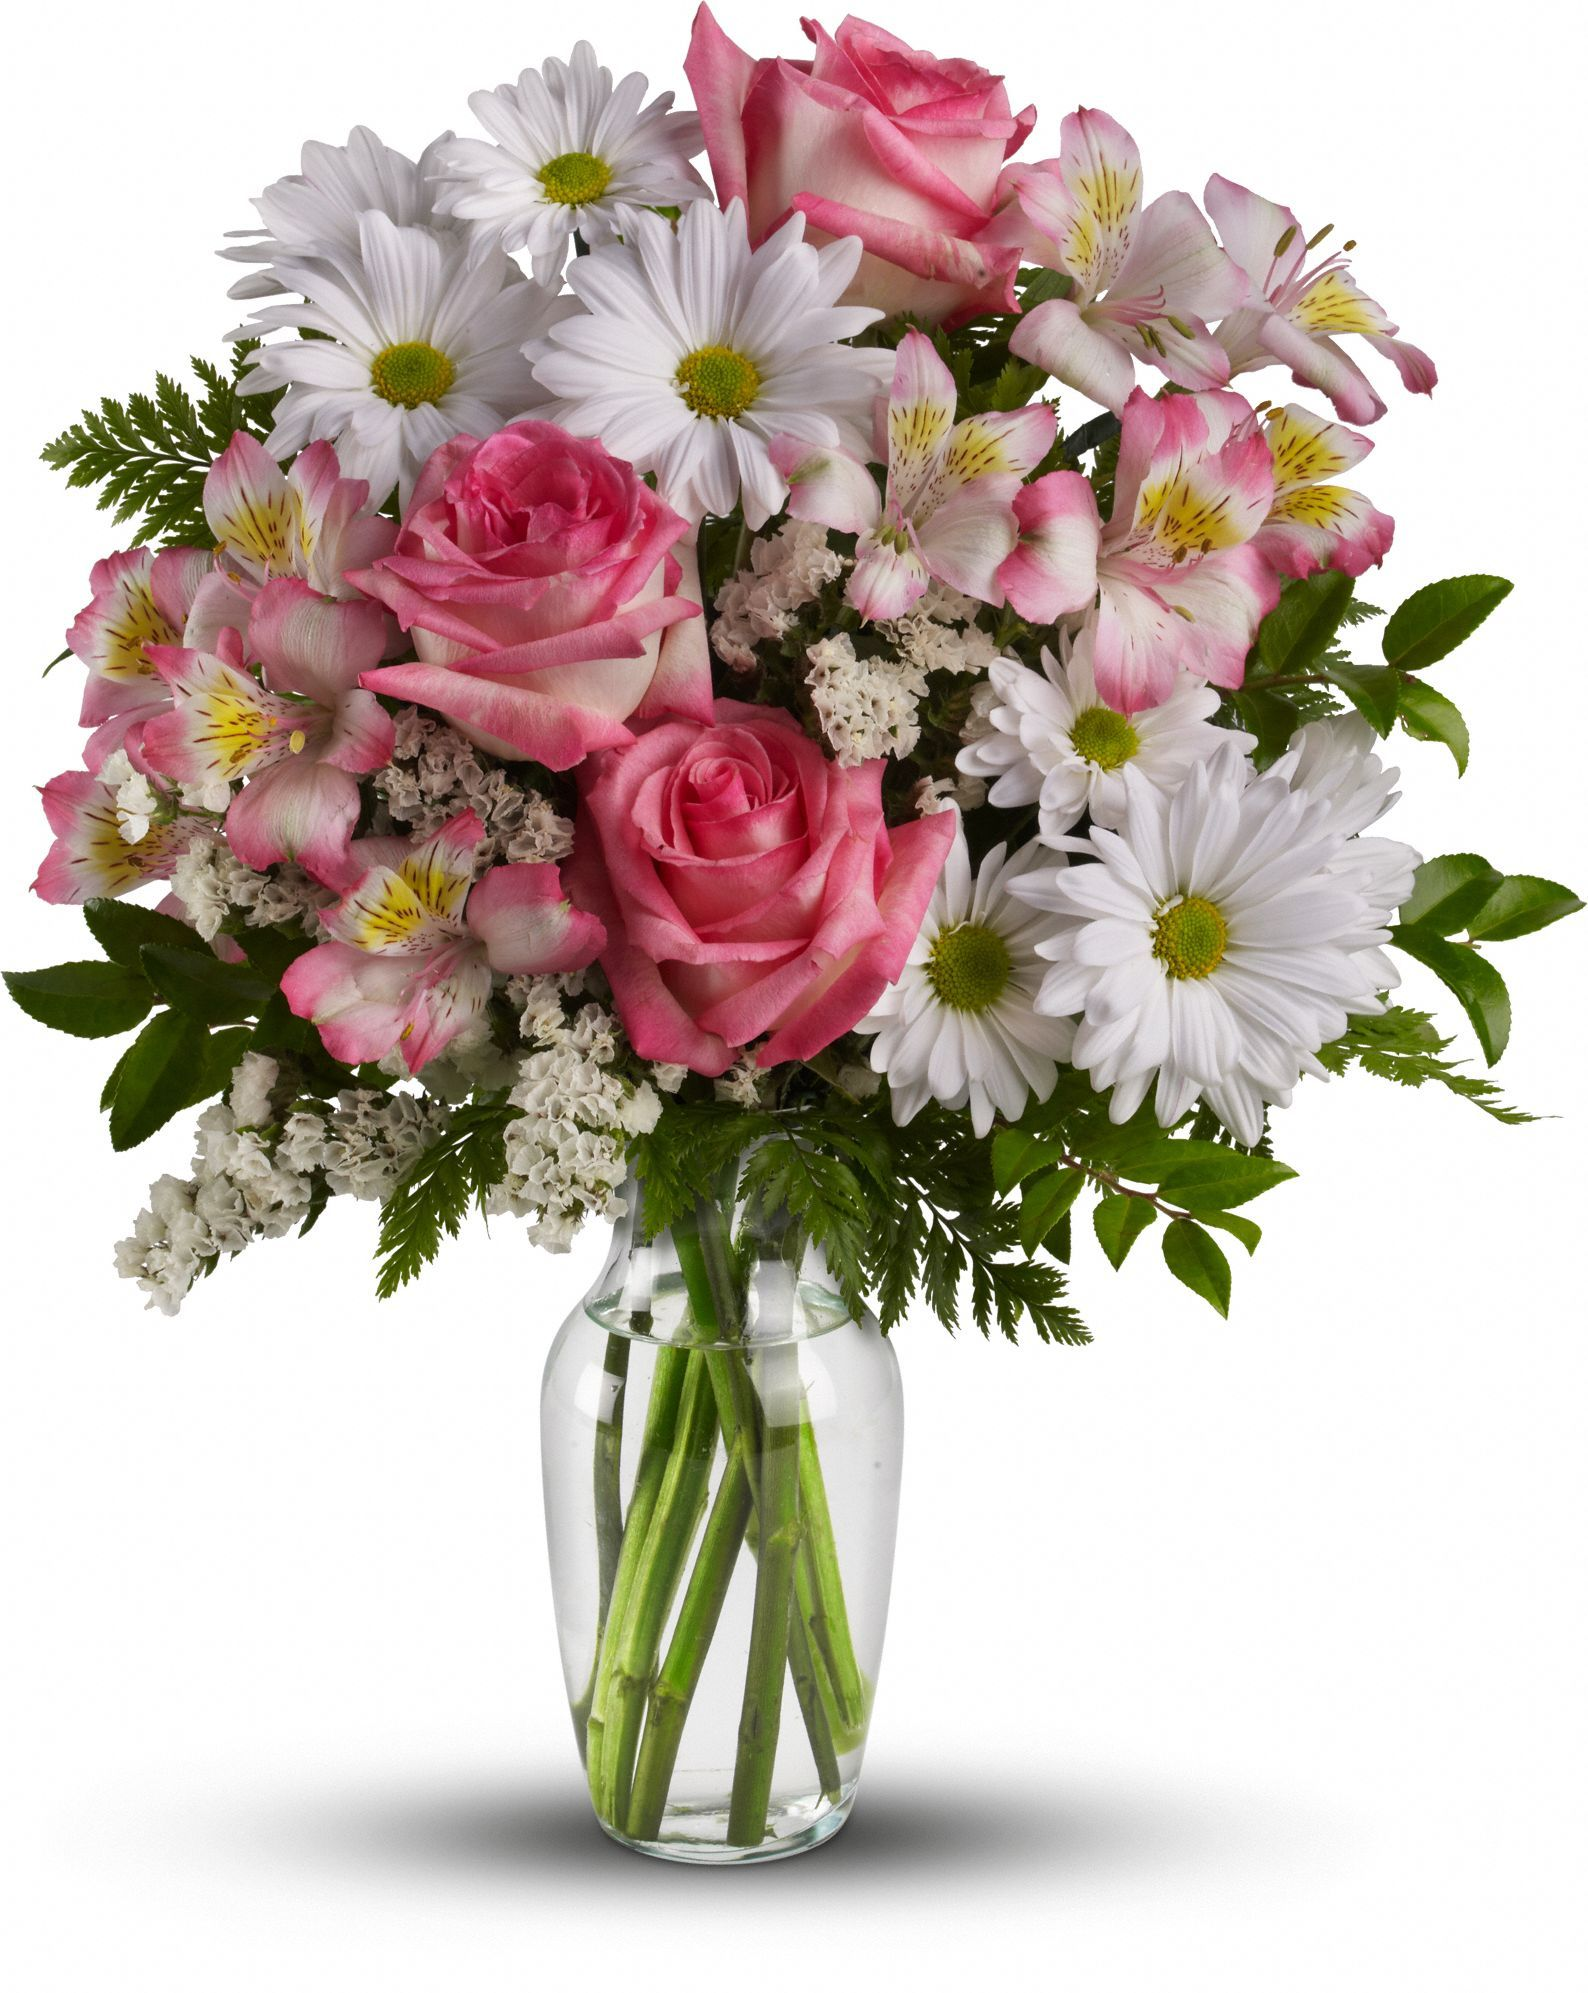 What a treat bouquet with roses save 25 on this bouquet and many what a treat bouquet with roses save 25 on this bouquet and many others with izmirmasajfo